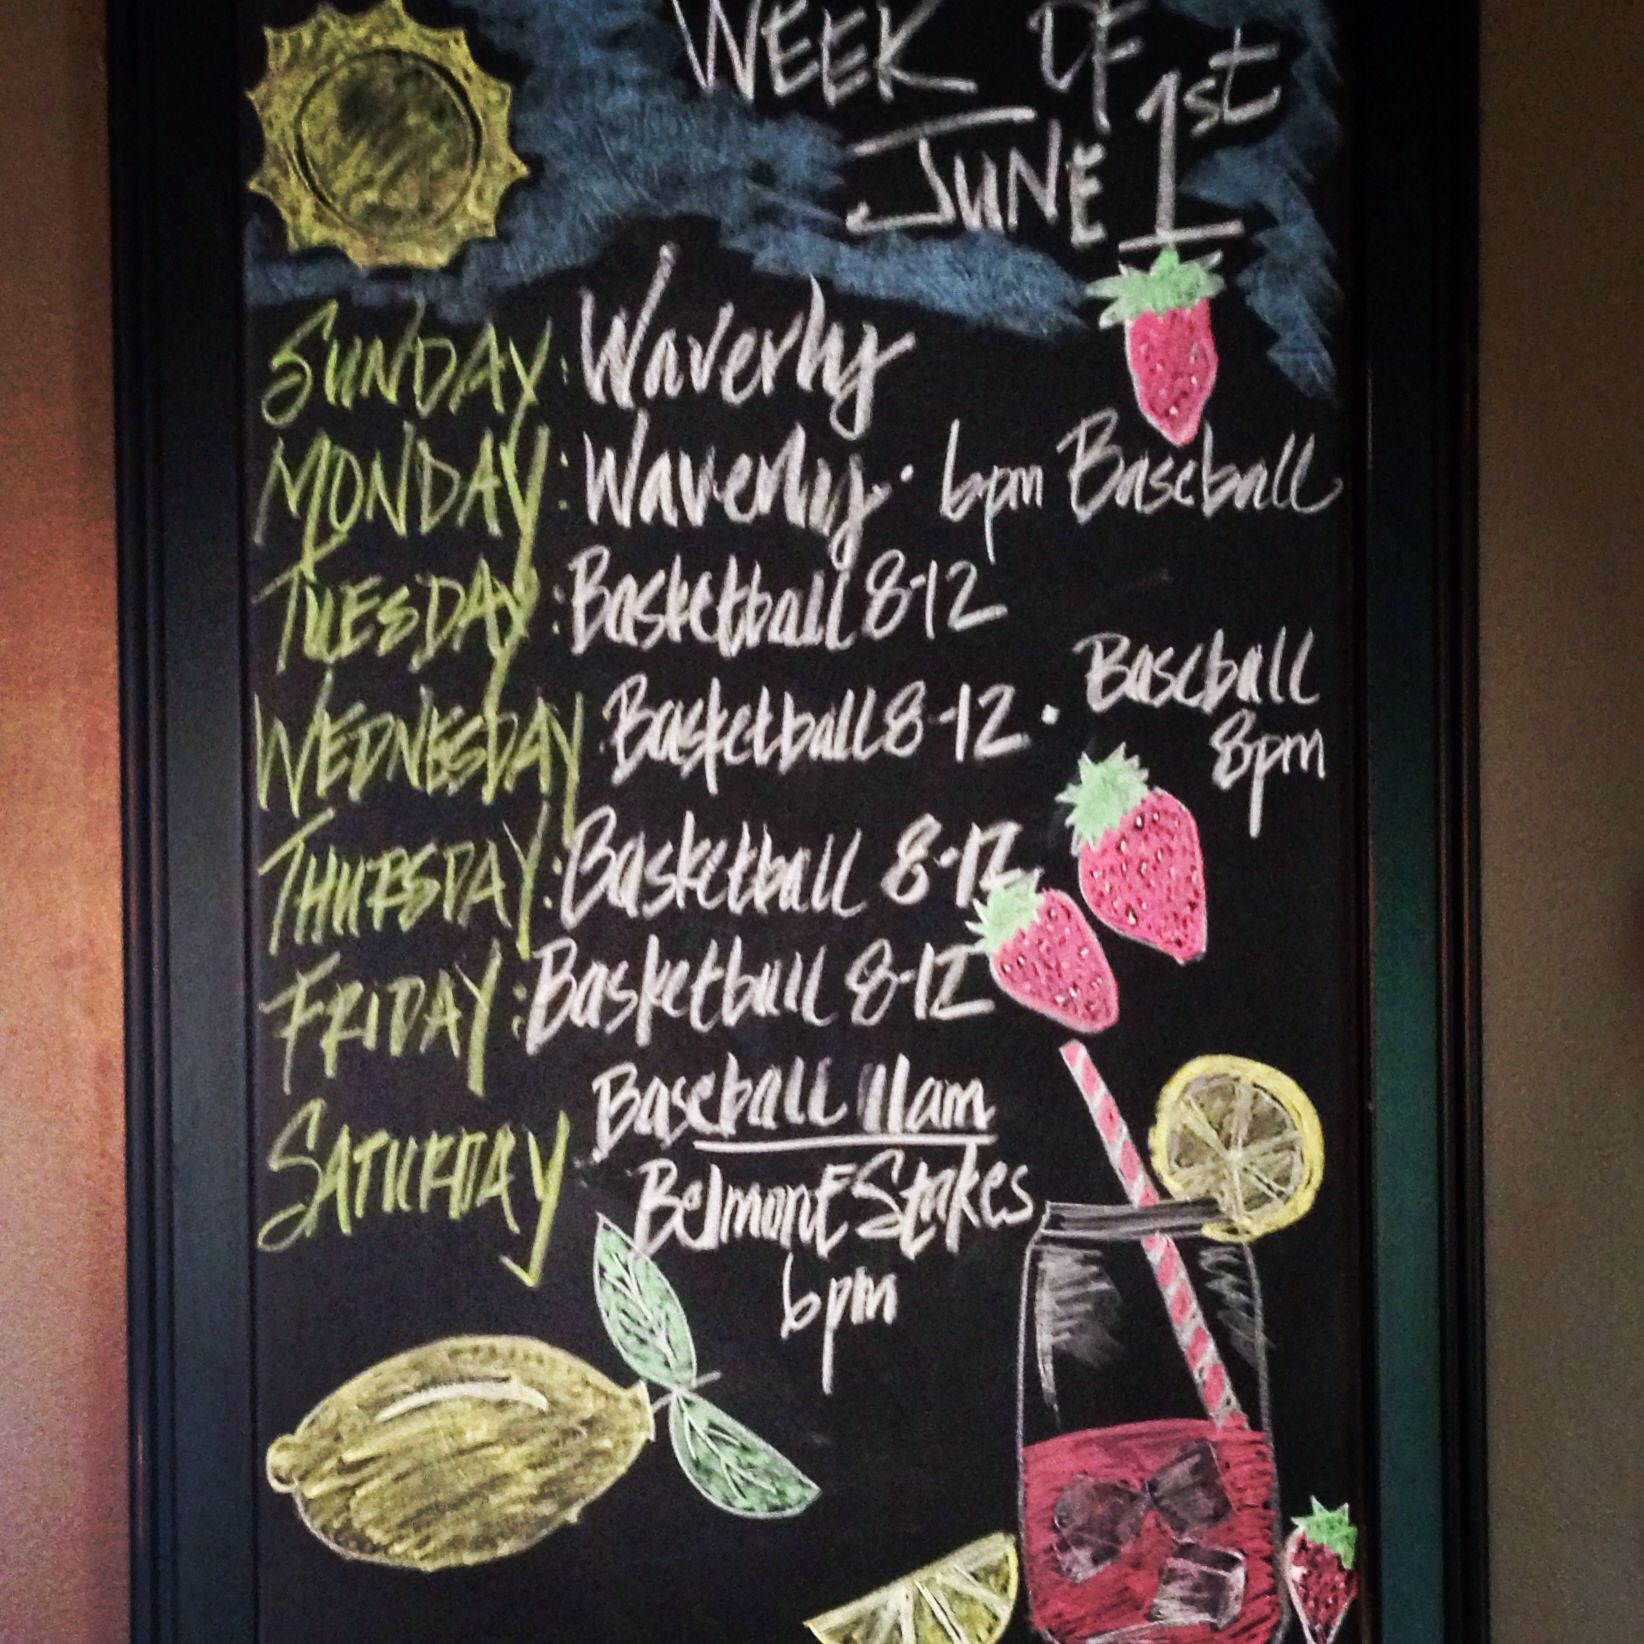 Chalkboards 1St Week Of Summer Break Finally June